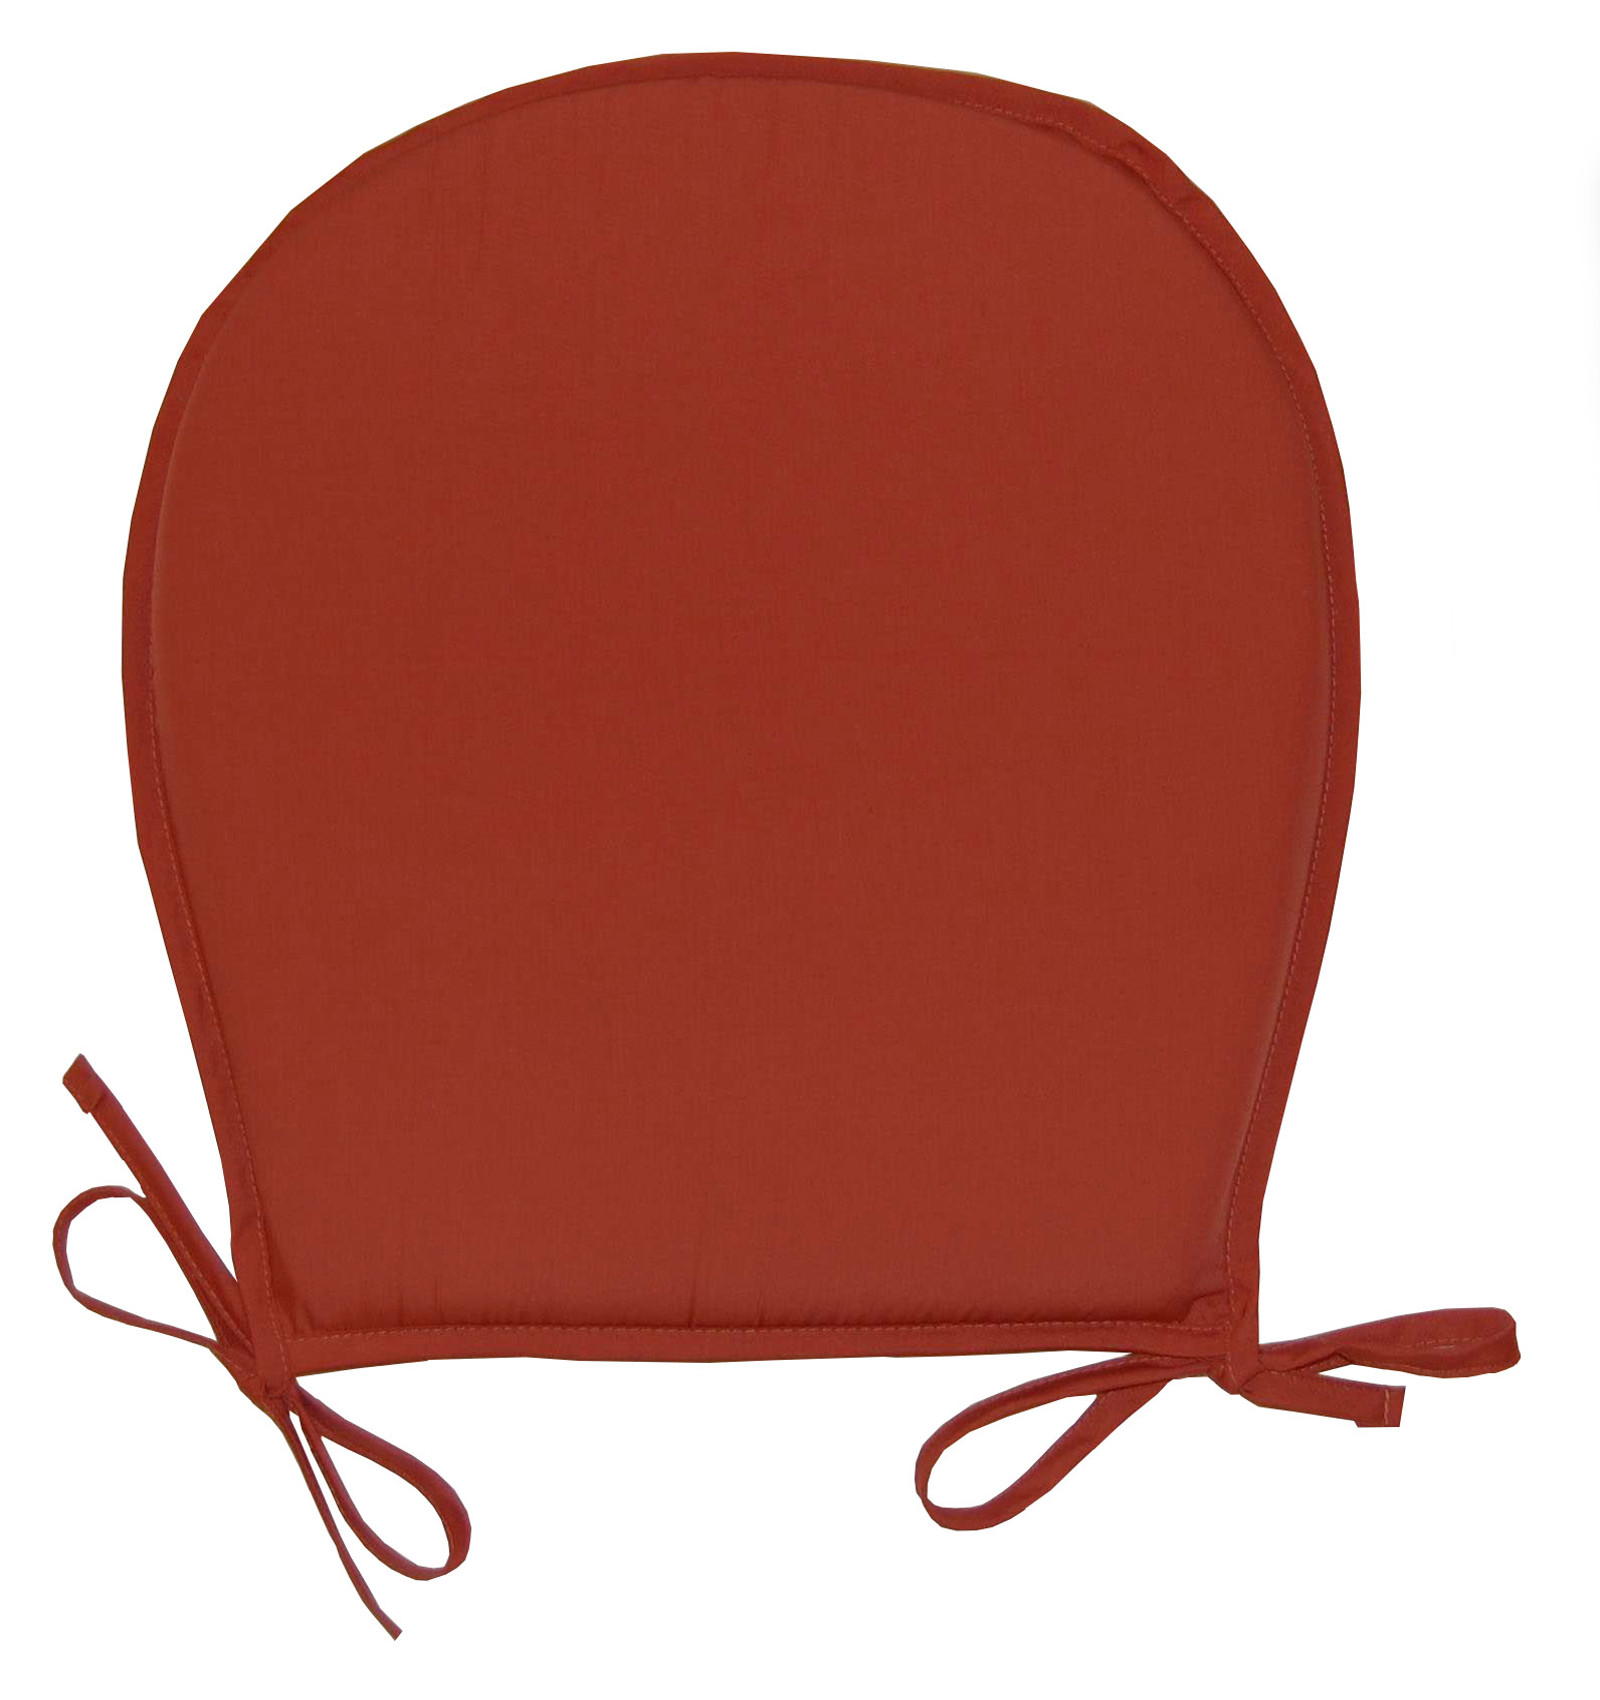 comfortable leather room pads for kitchen dining chairs elegant dinning chair decor furniture